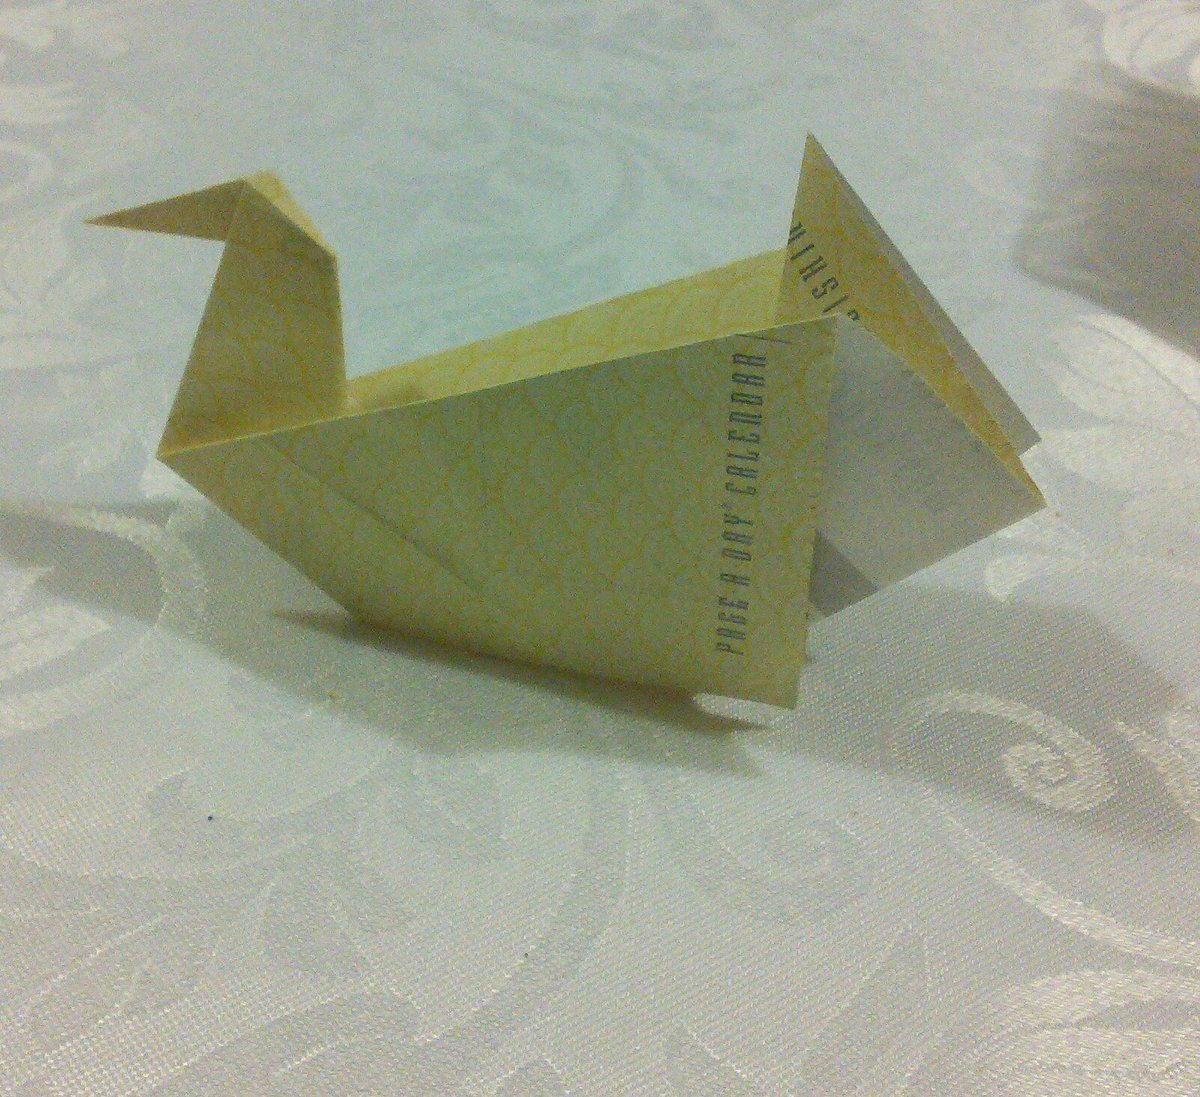 Origamicalendar Hashtag On Twitter Origami Mouse Instructionsorigami Diagramorigami Mickey 0 Replies Retweets 2 Likes